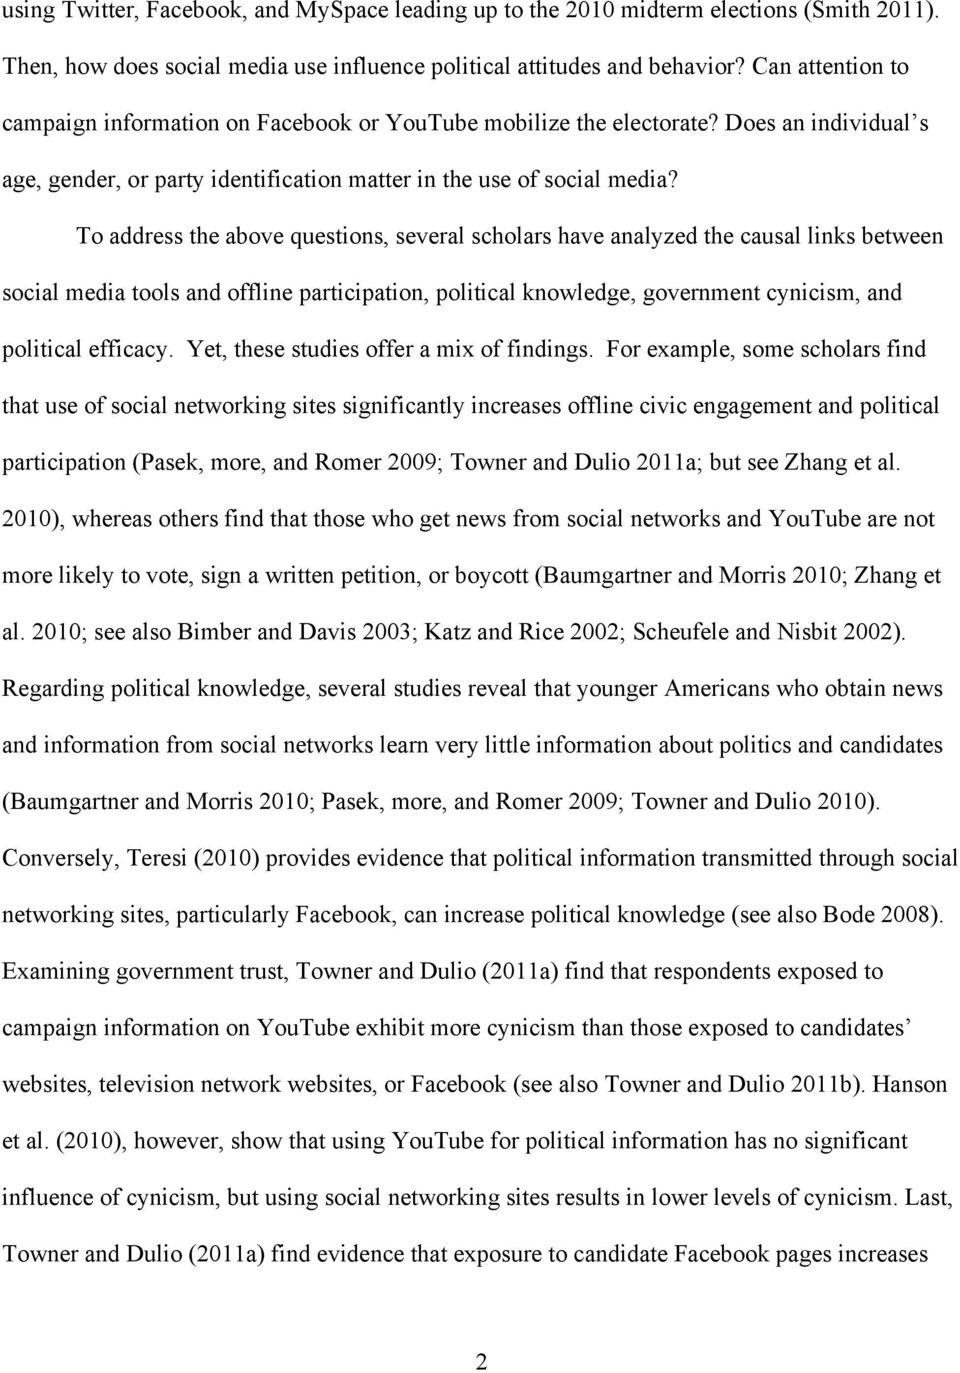 To address the above questions, several scholars have analyzed the causal links between social media tools and offline participation, political knowledge, government cynicism, and political efficacy.